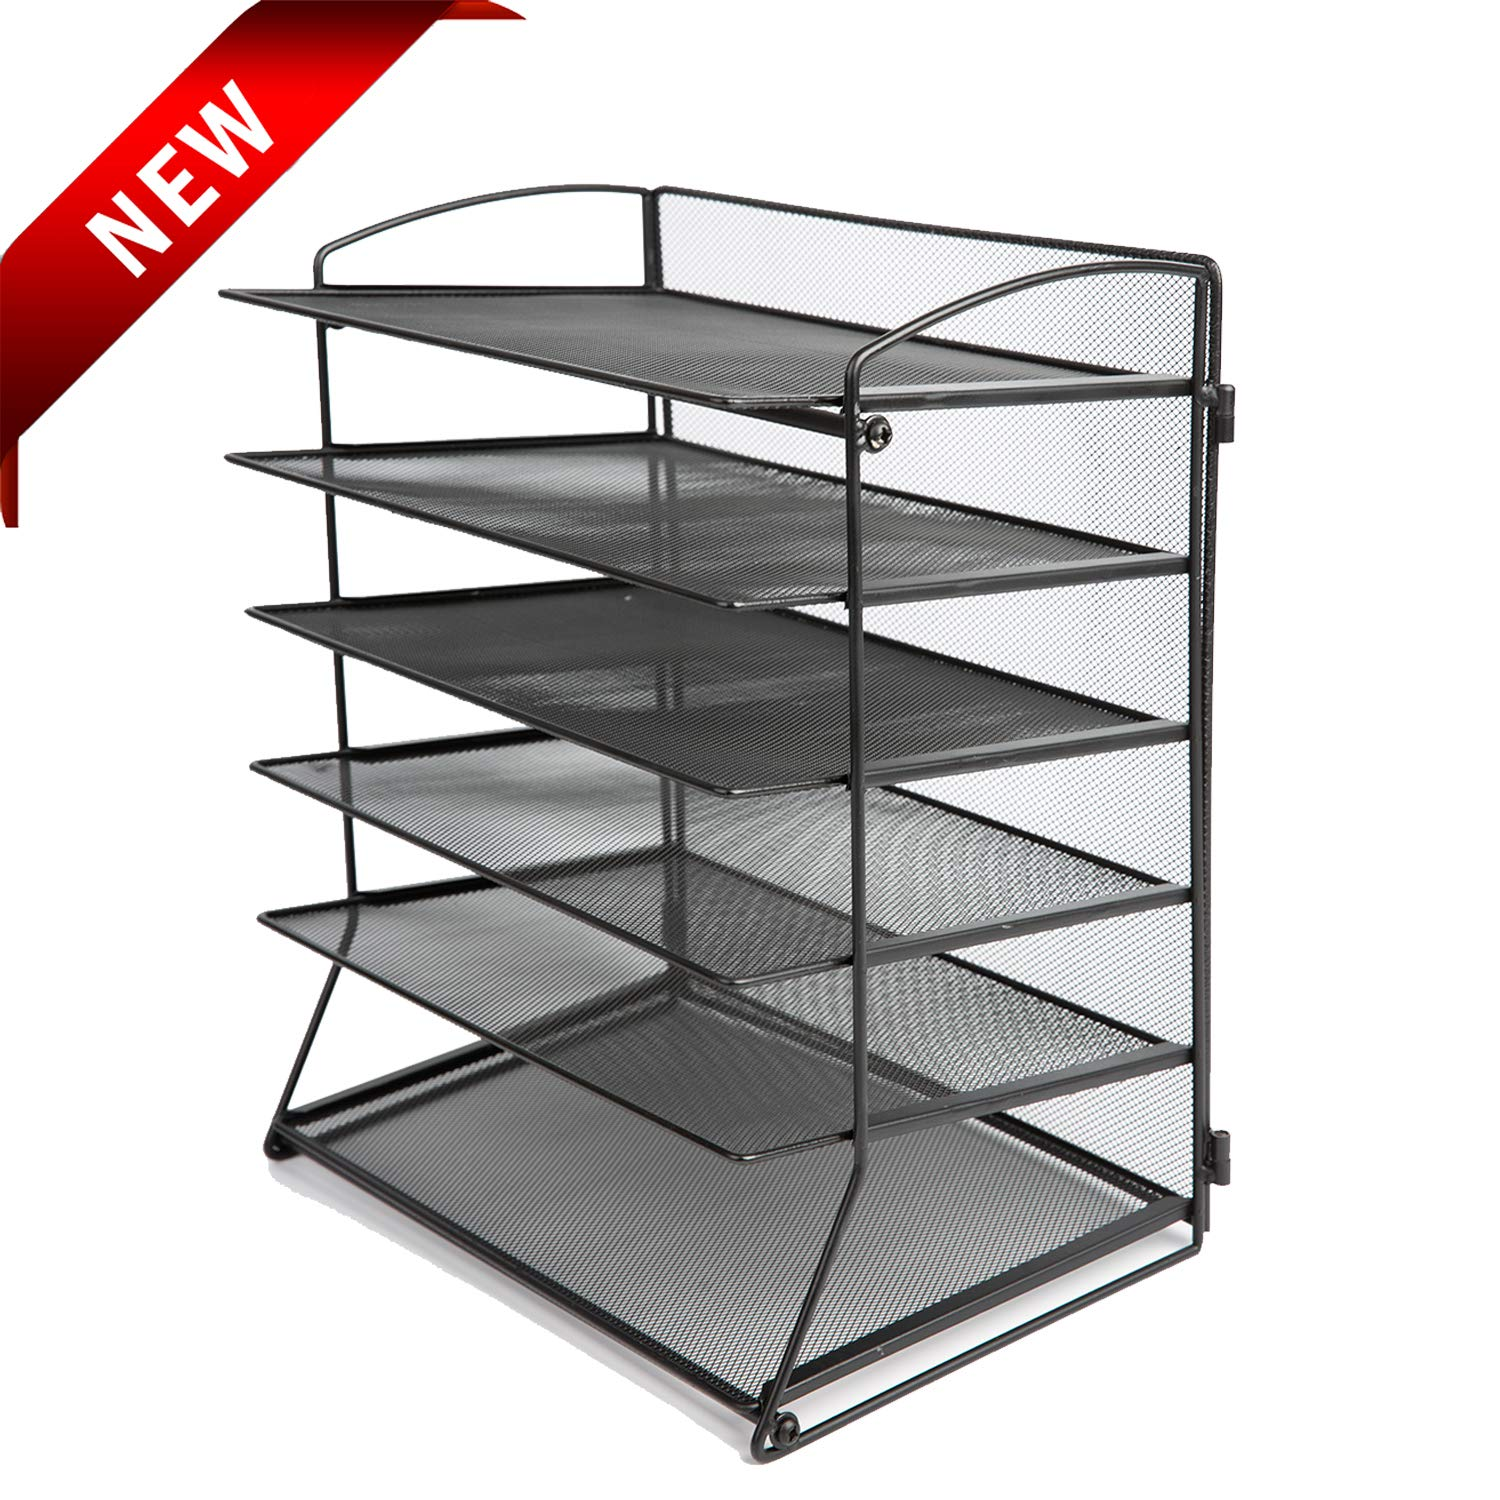 Desk Top File Organizer with 6 Metal Trays Holder for Document Folder Letter Magazine and Paper Rack Home Office Black